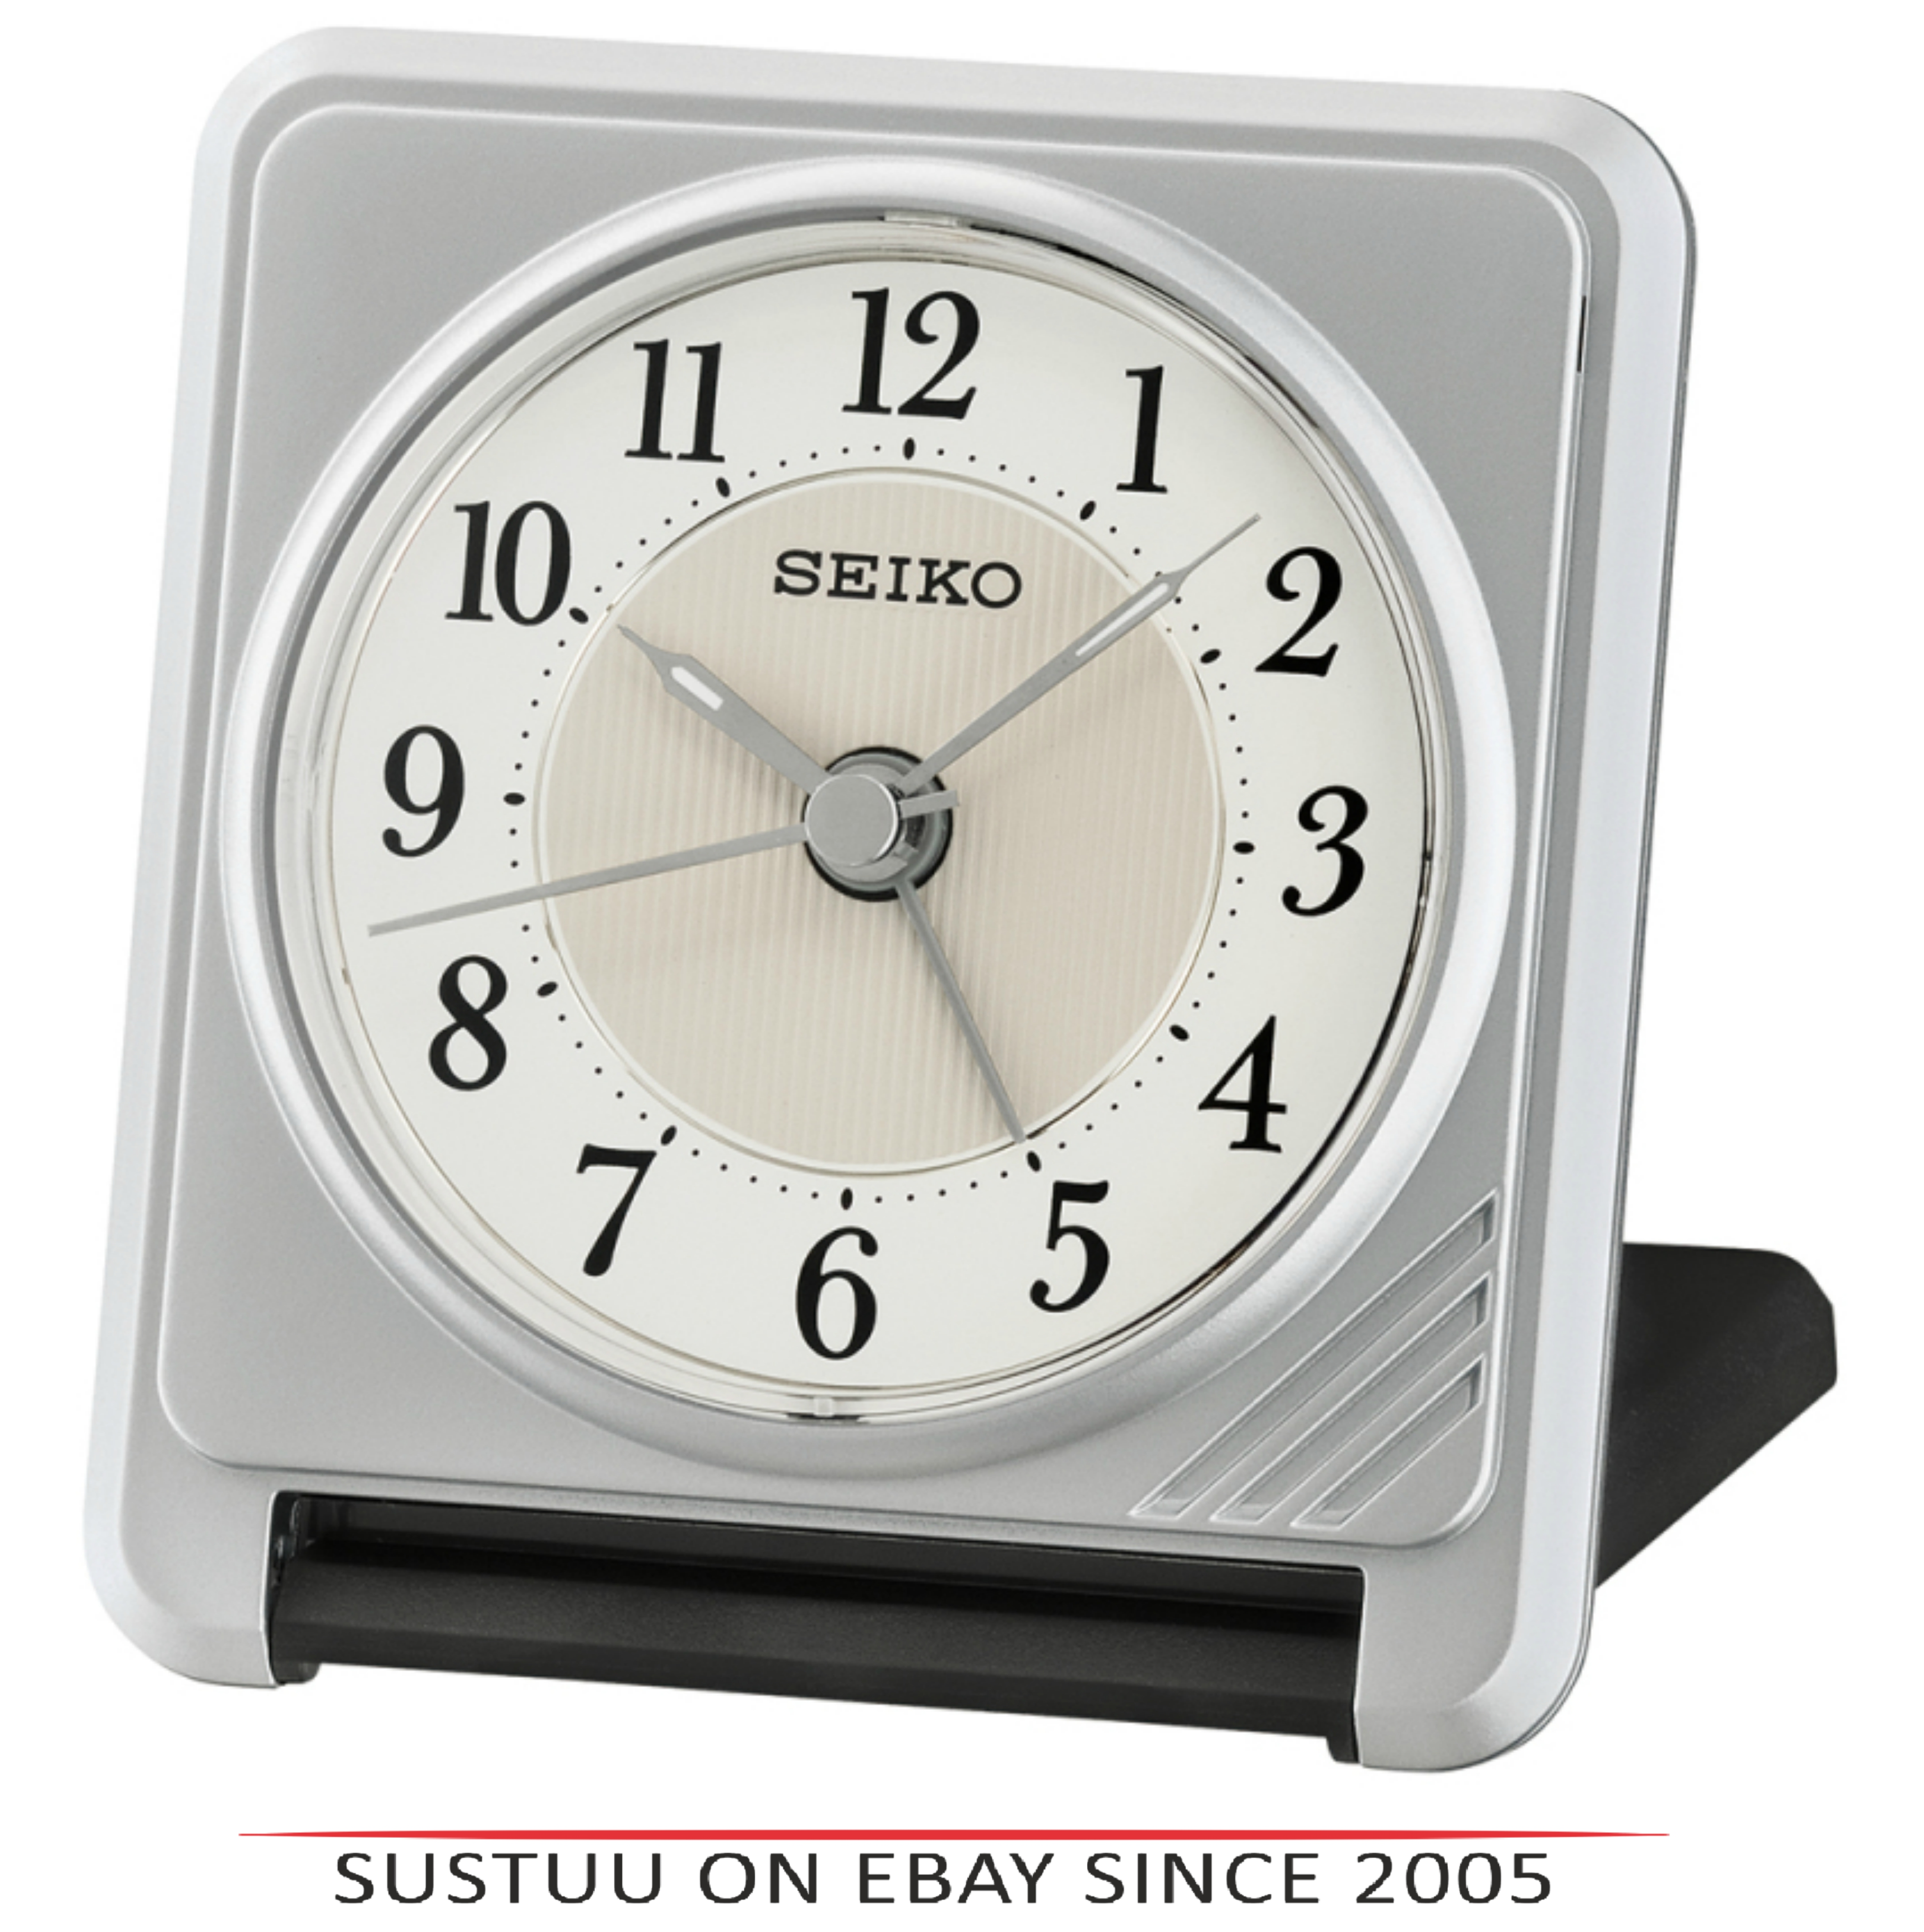 Seiko QHT016S Ascending Beep Alarm Clock With Light & Snooze Function - Silver